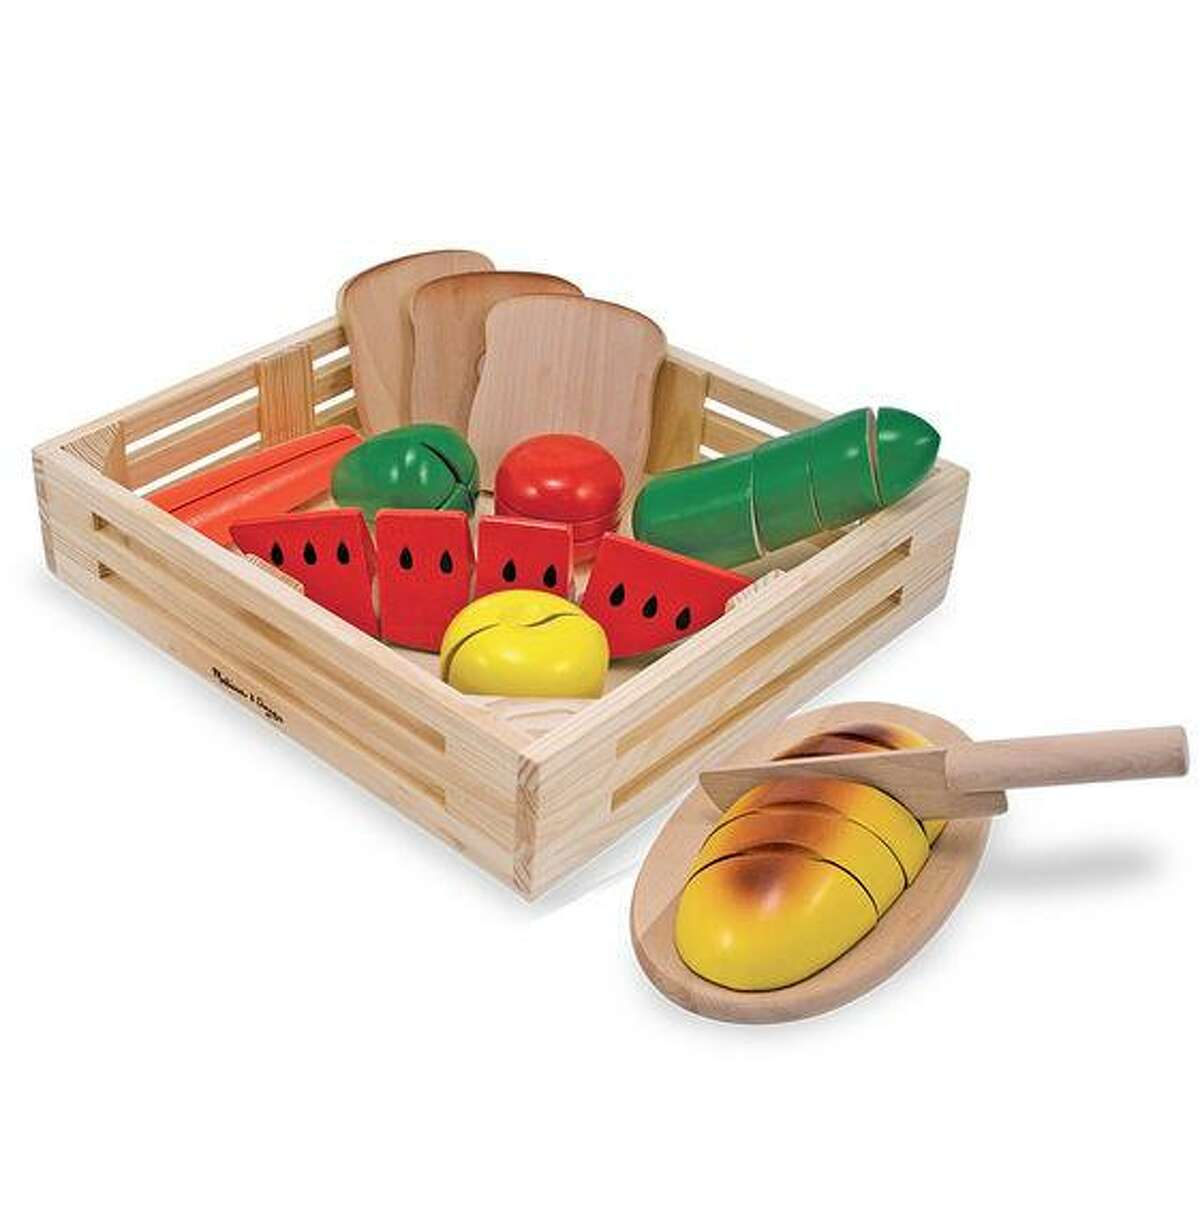 Cutting food set for children from Melissa & Doug toys.